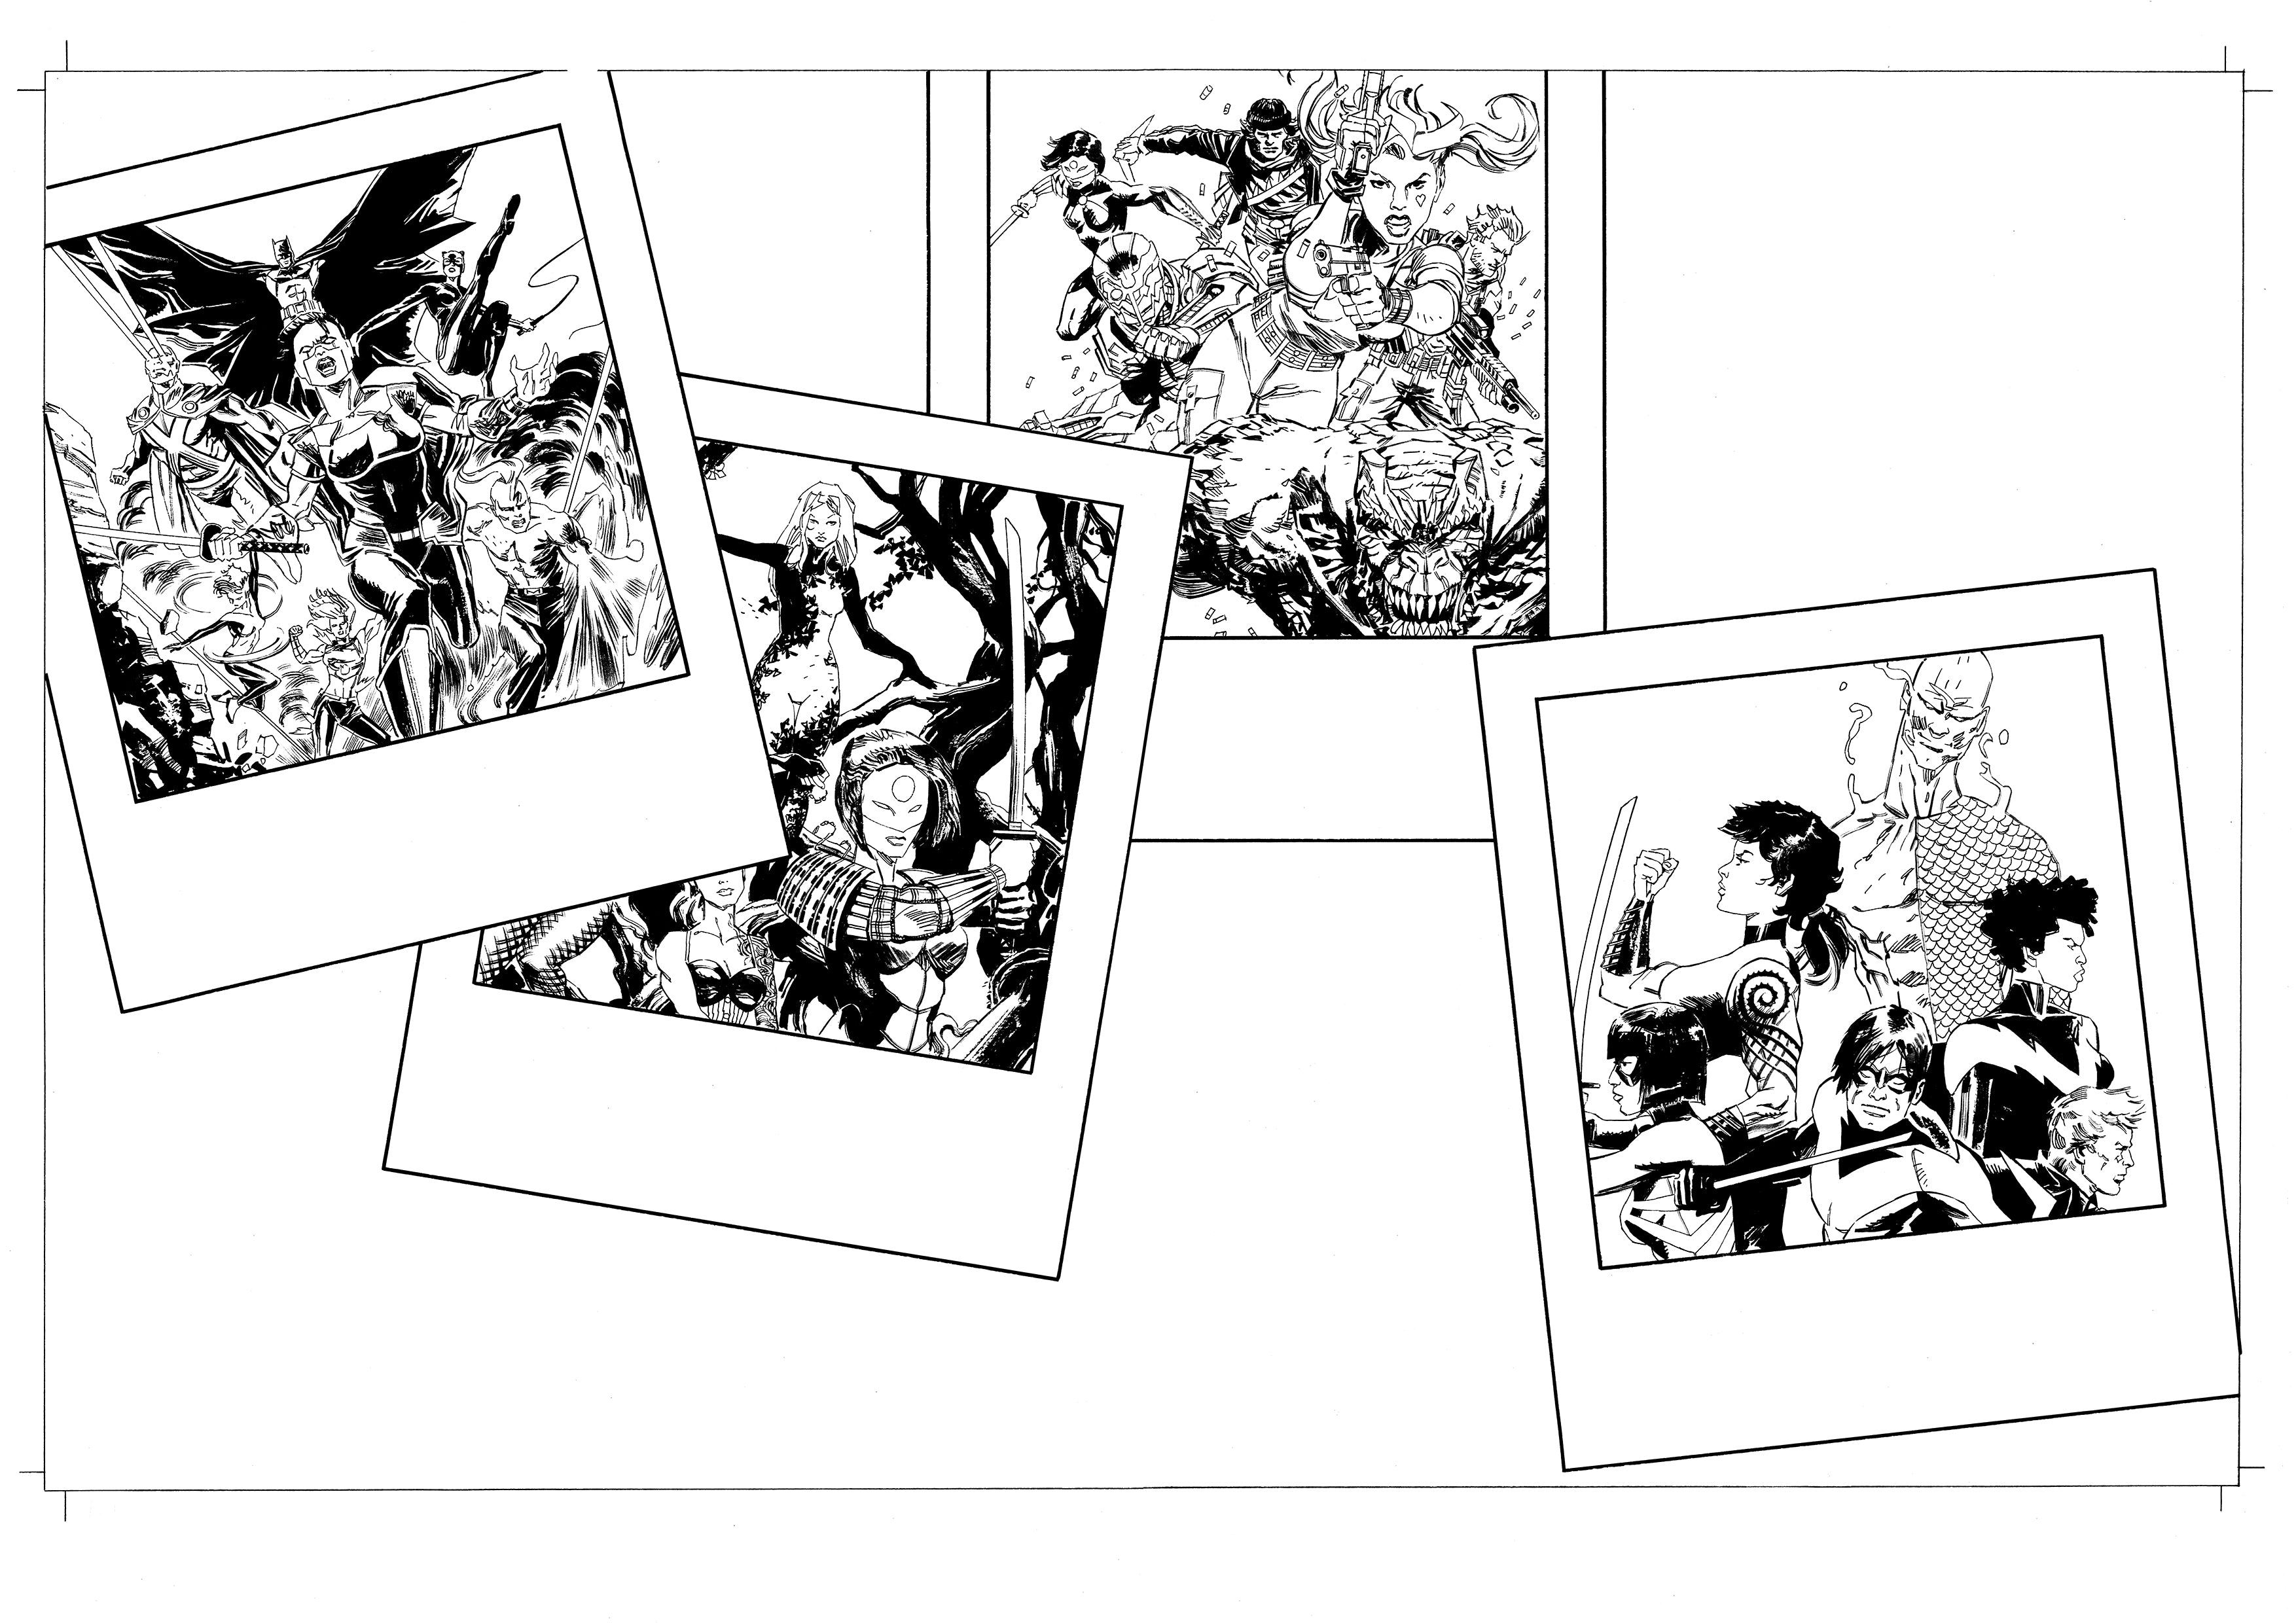 Andrea Cucchi Original Art Other History of DC #3 Page 44-45 Double Page Spread